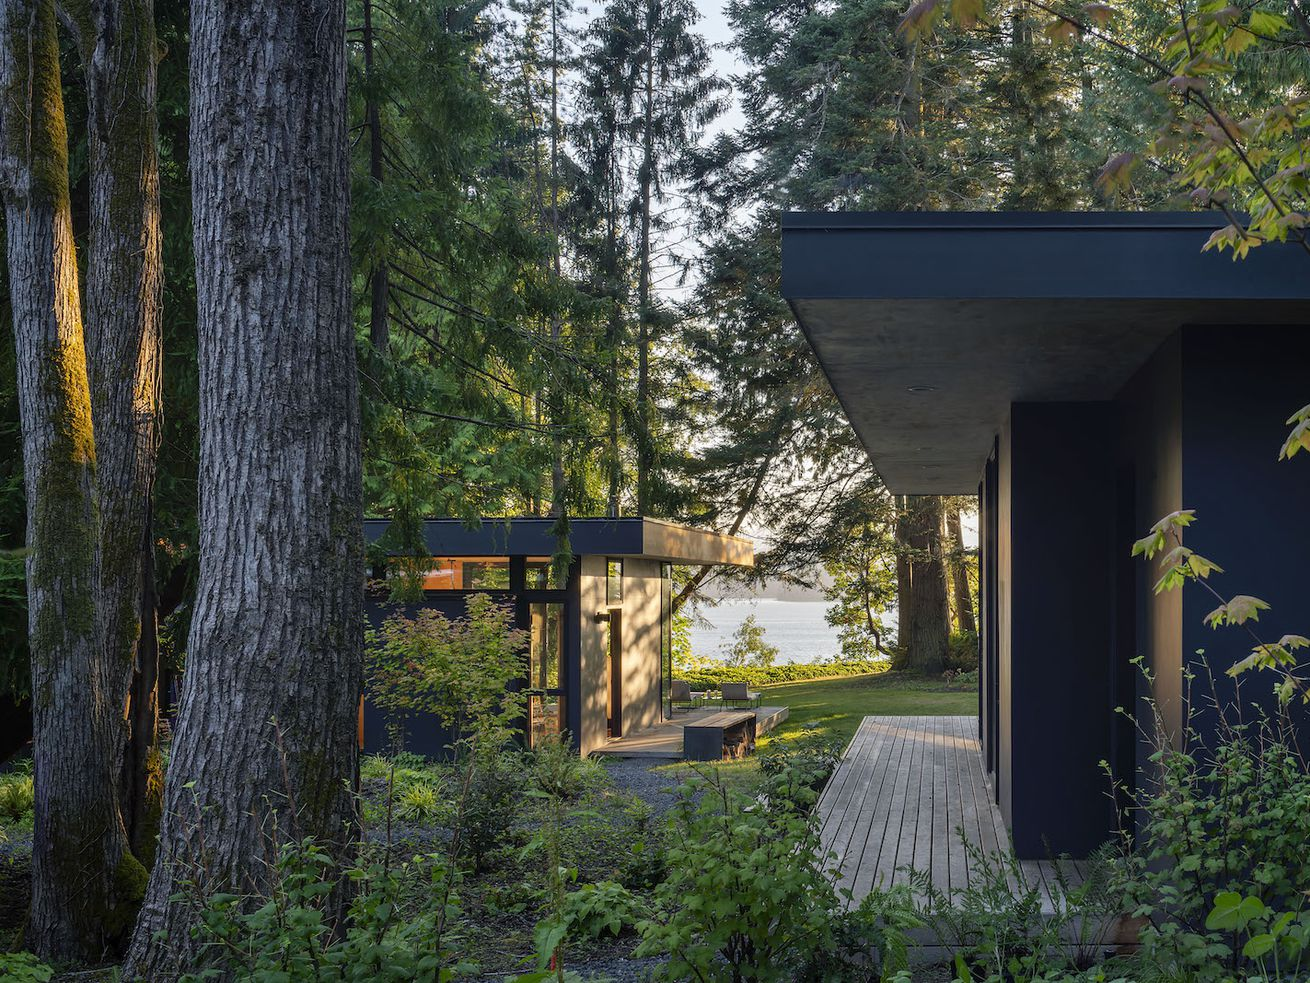 Modern cabins create dreamy family getaway in the woods